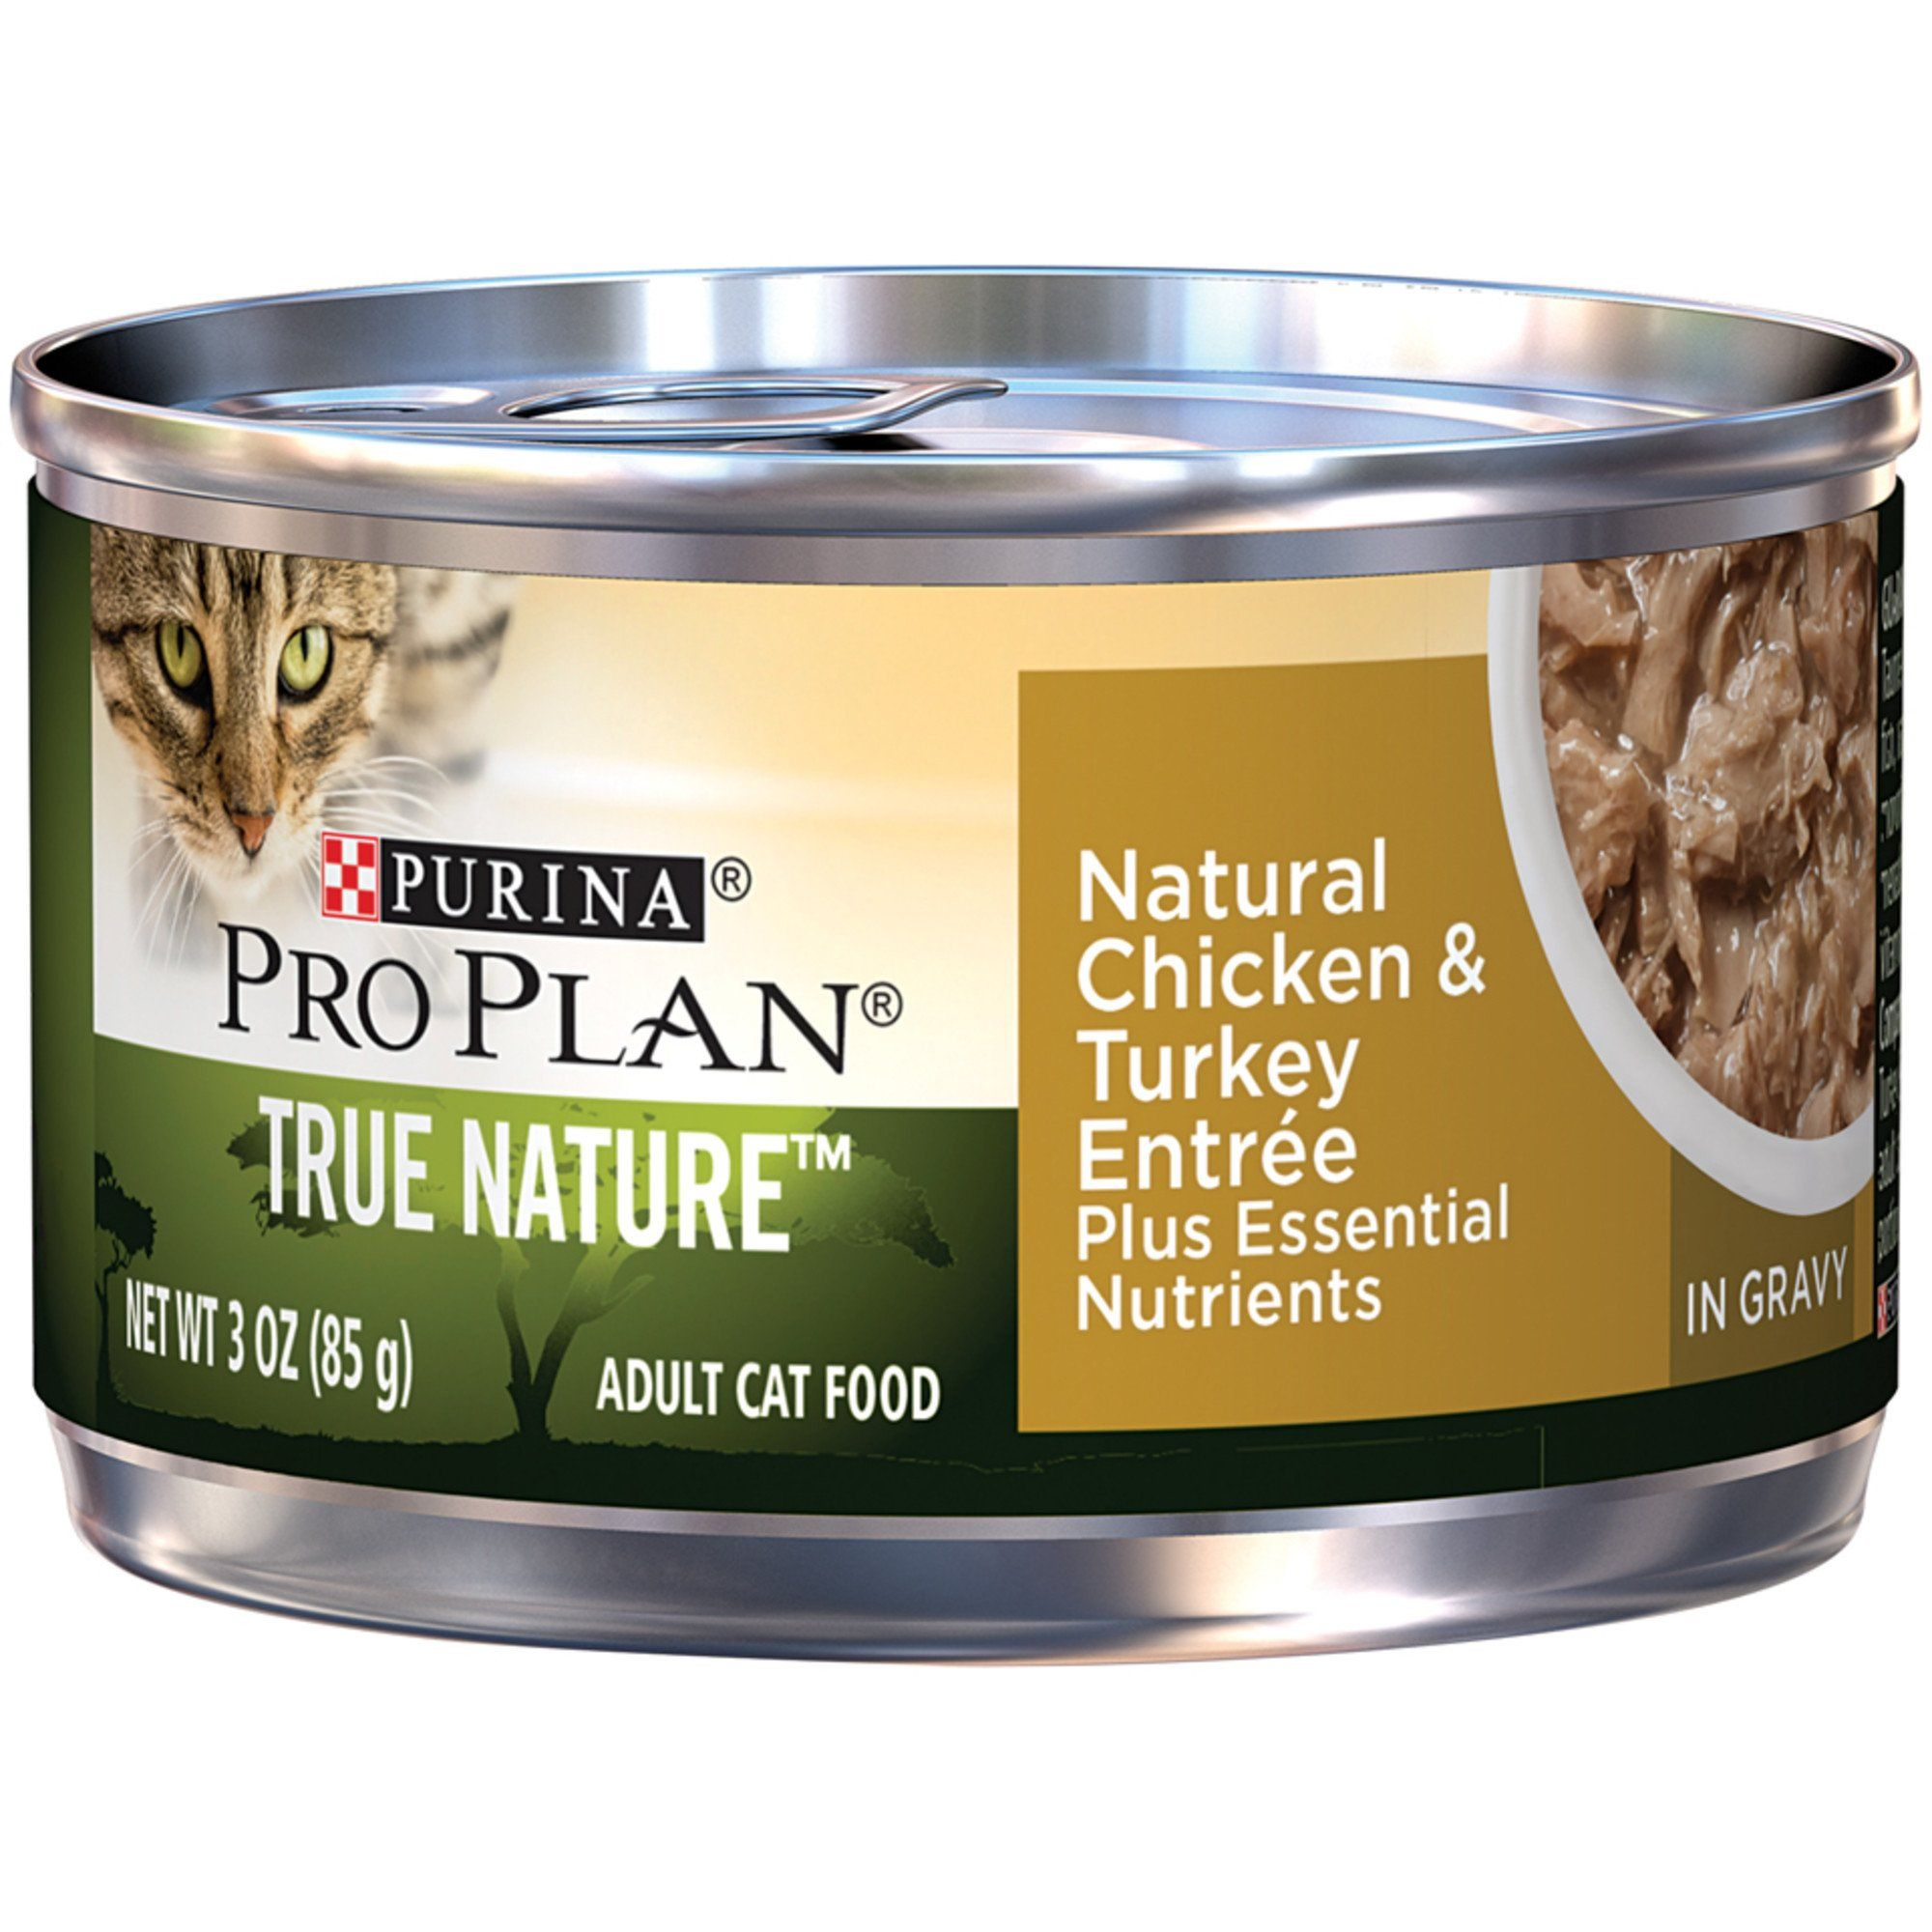 Purina Pro Plan True Nature Chicken Turkey Adult Canned Cat Food